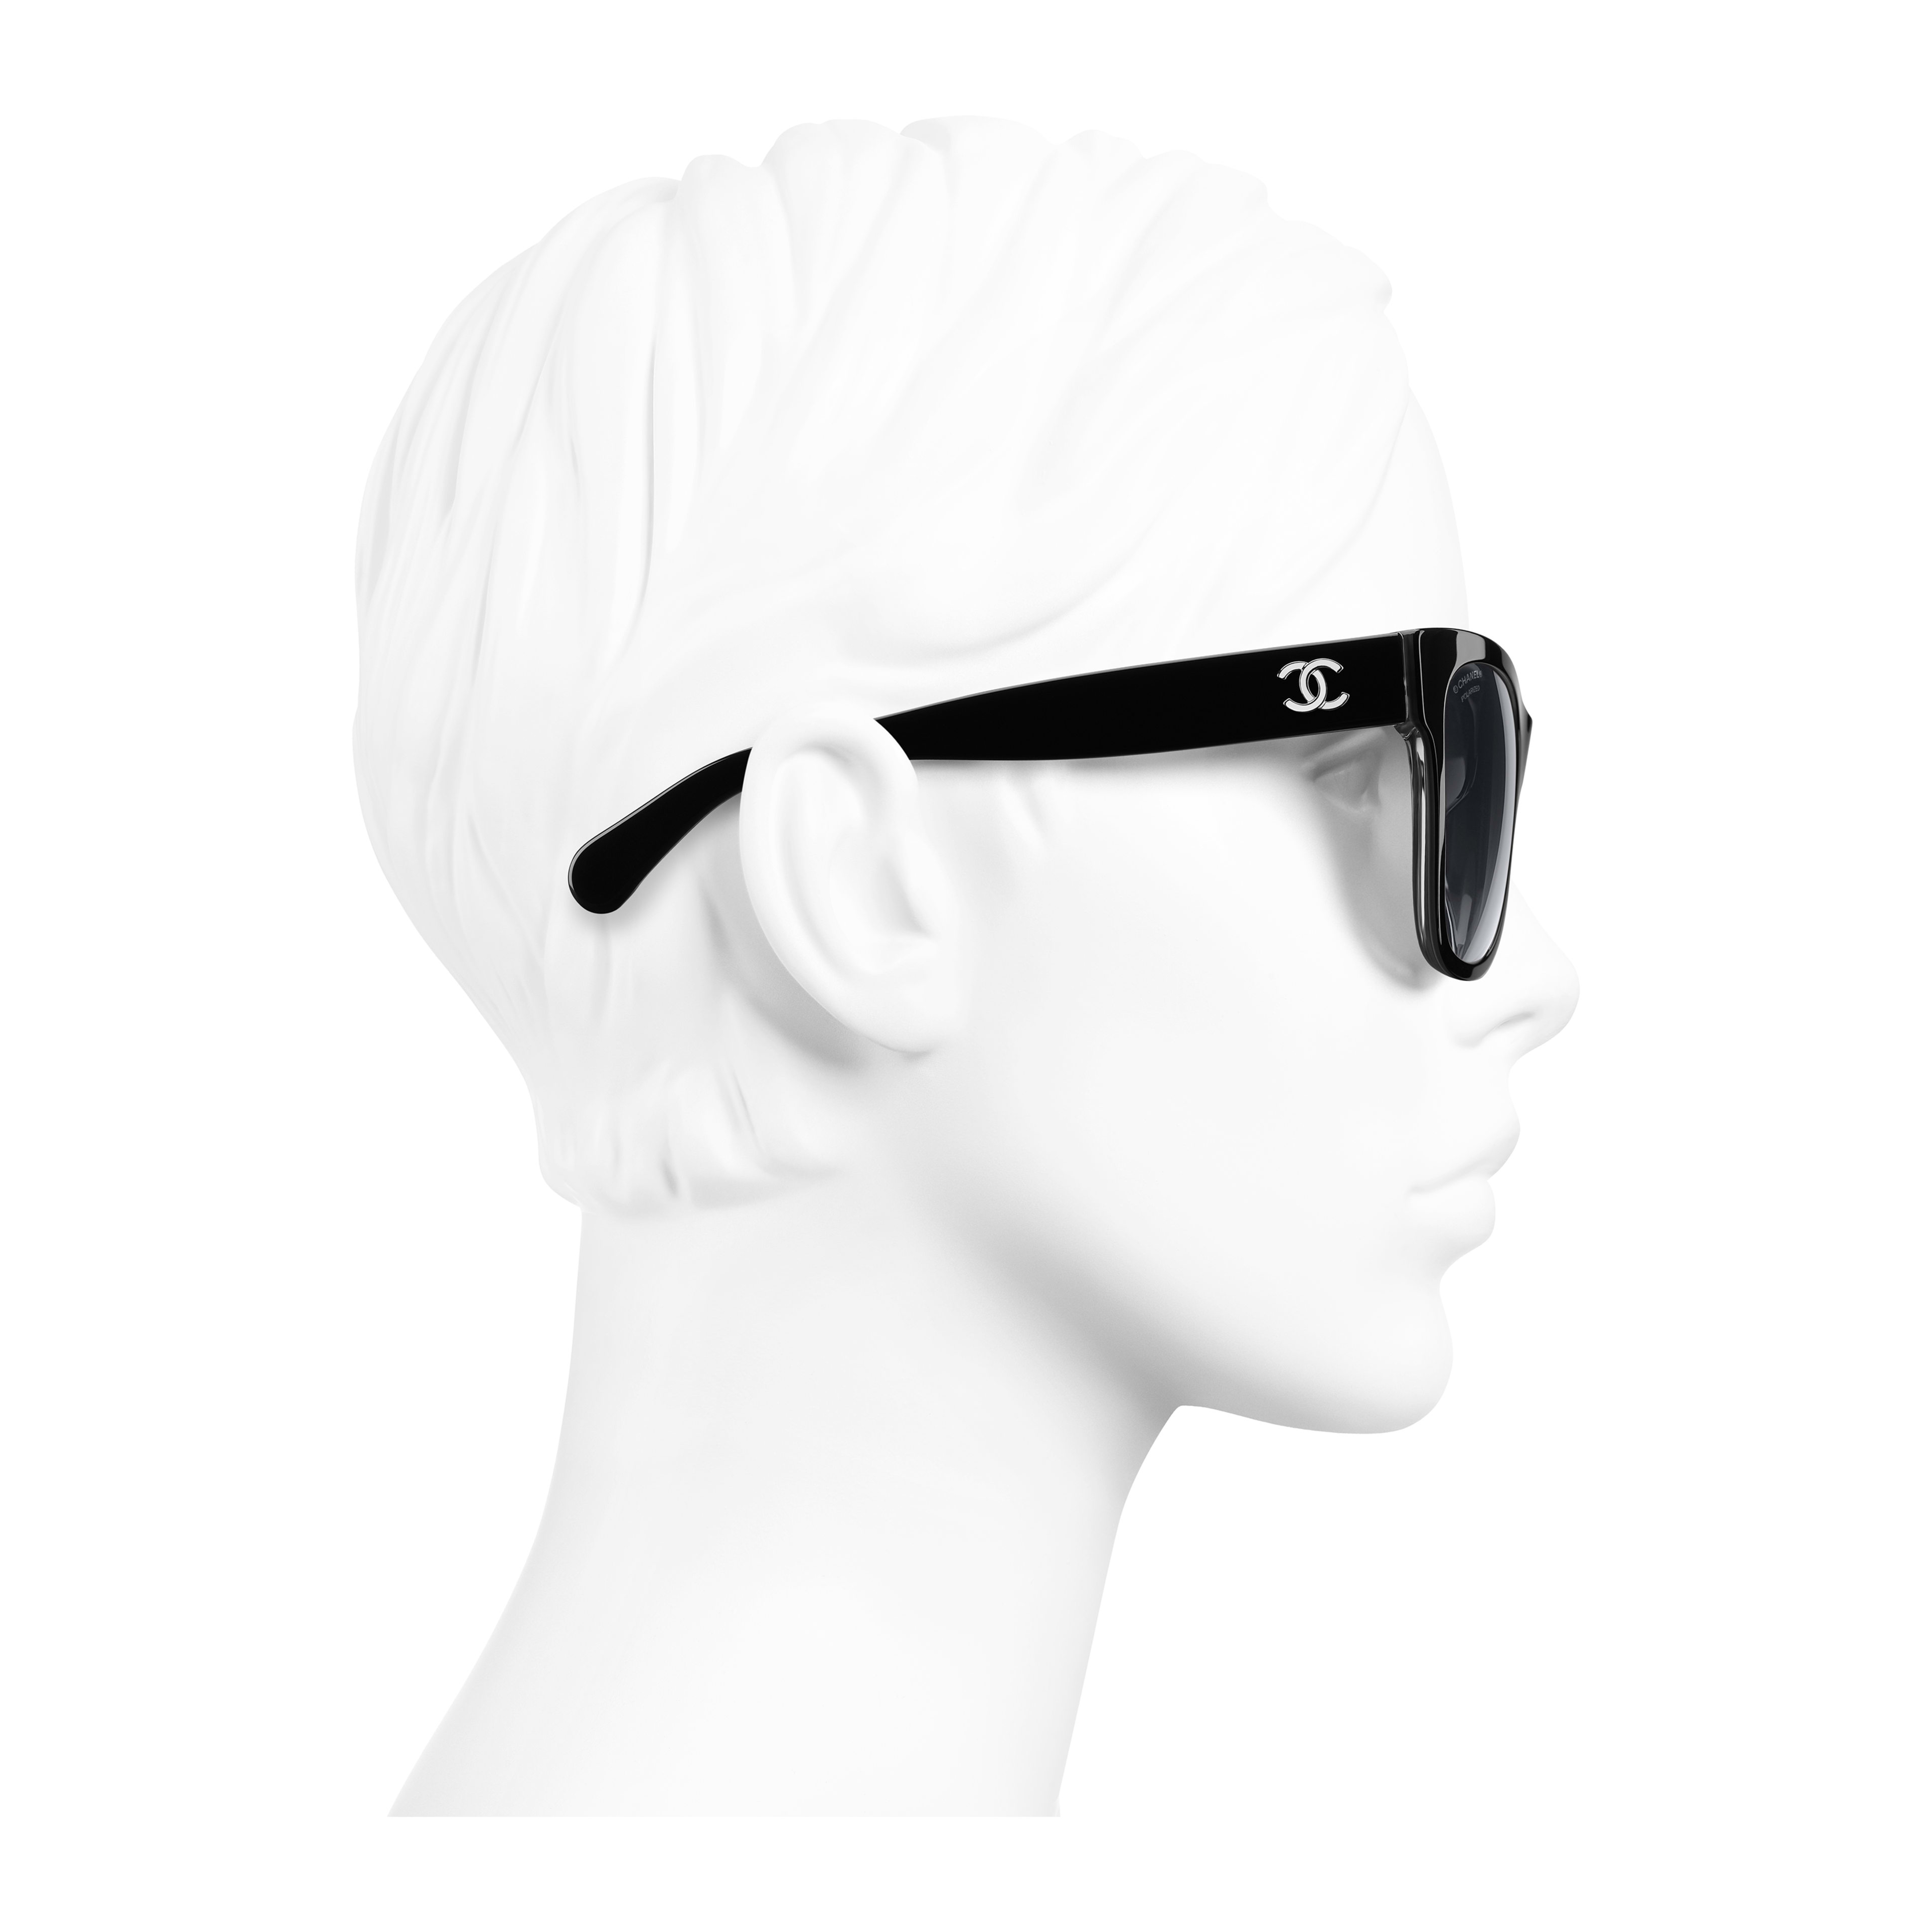 Square Sunglasses - Black - Acetate - Worn side view - see full sized version